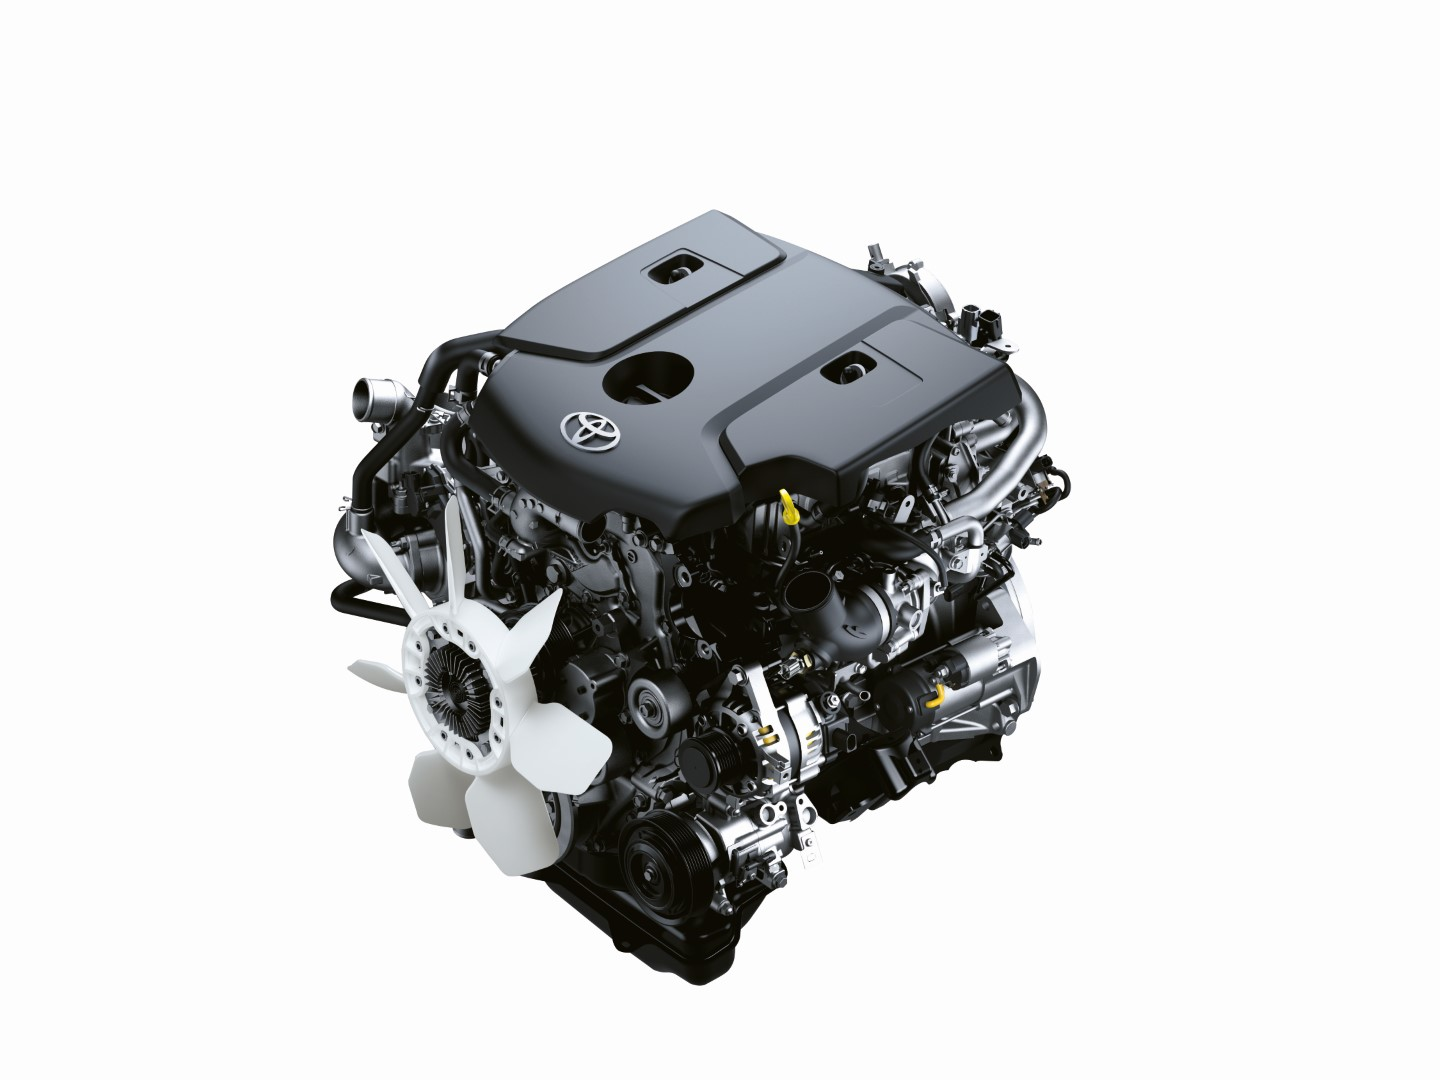 2021 Toyota Fortuner engine